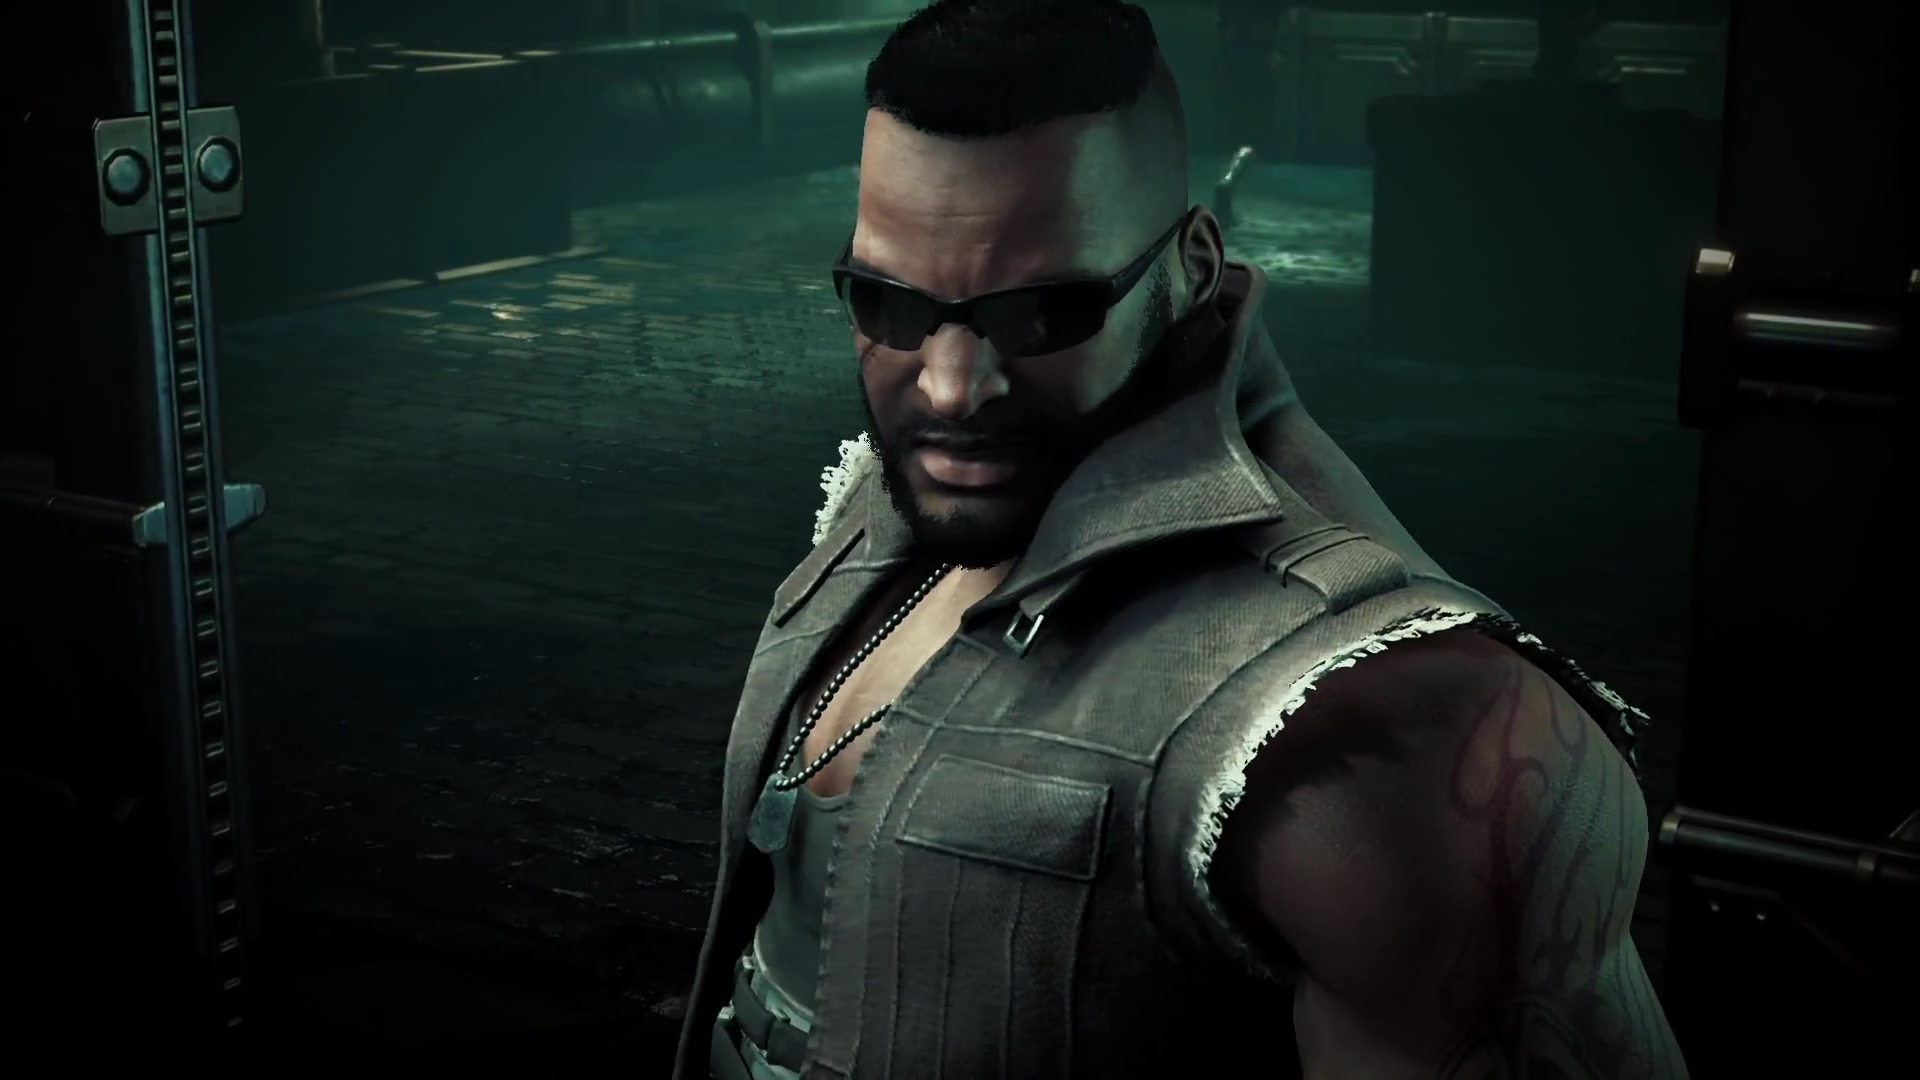 Final Fantasy 7 Remake Not 'Episodic' In Way Everyone Thought